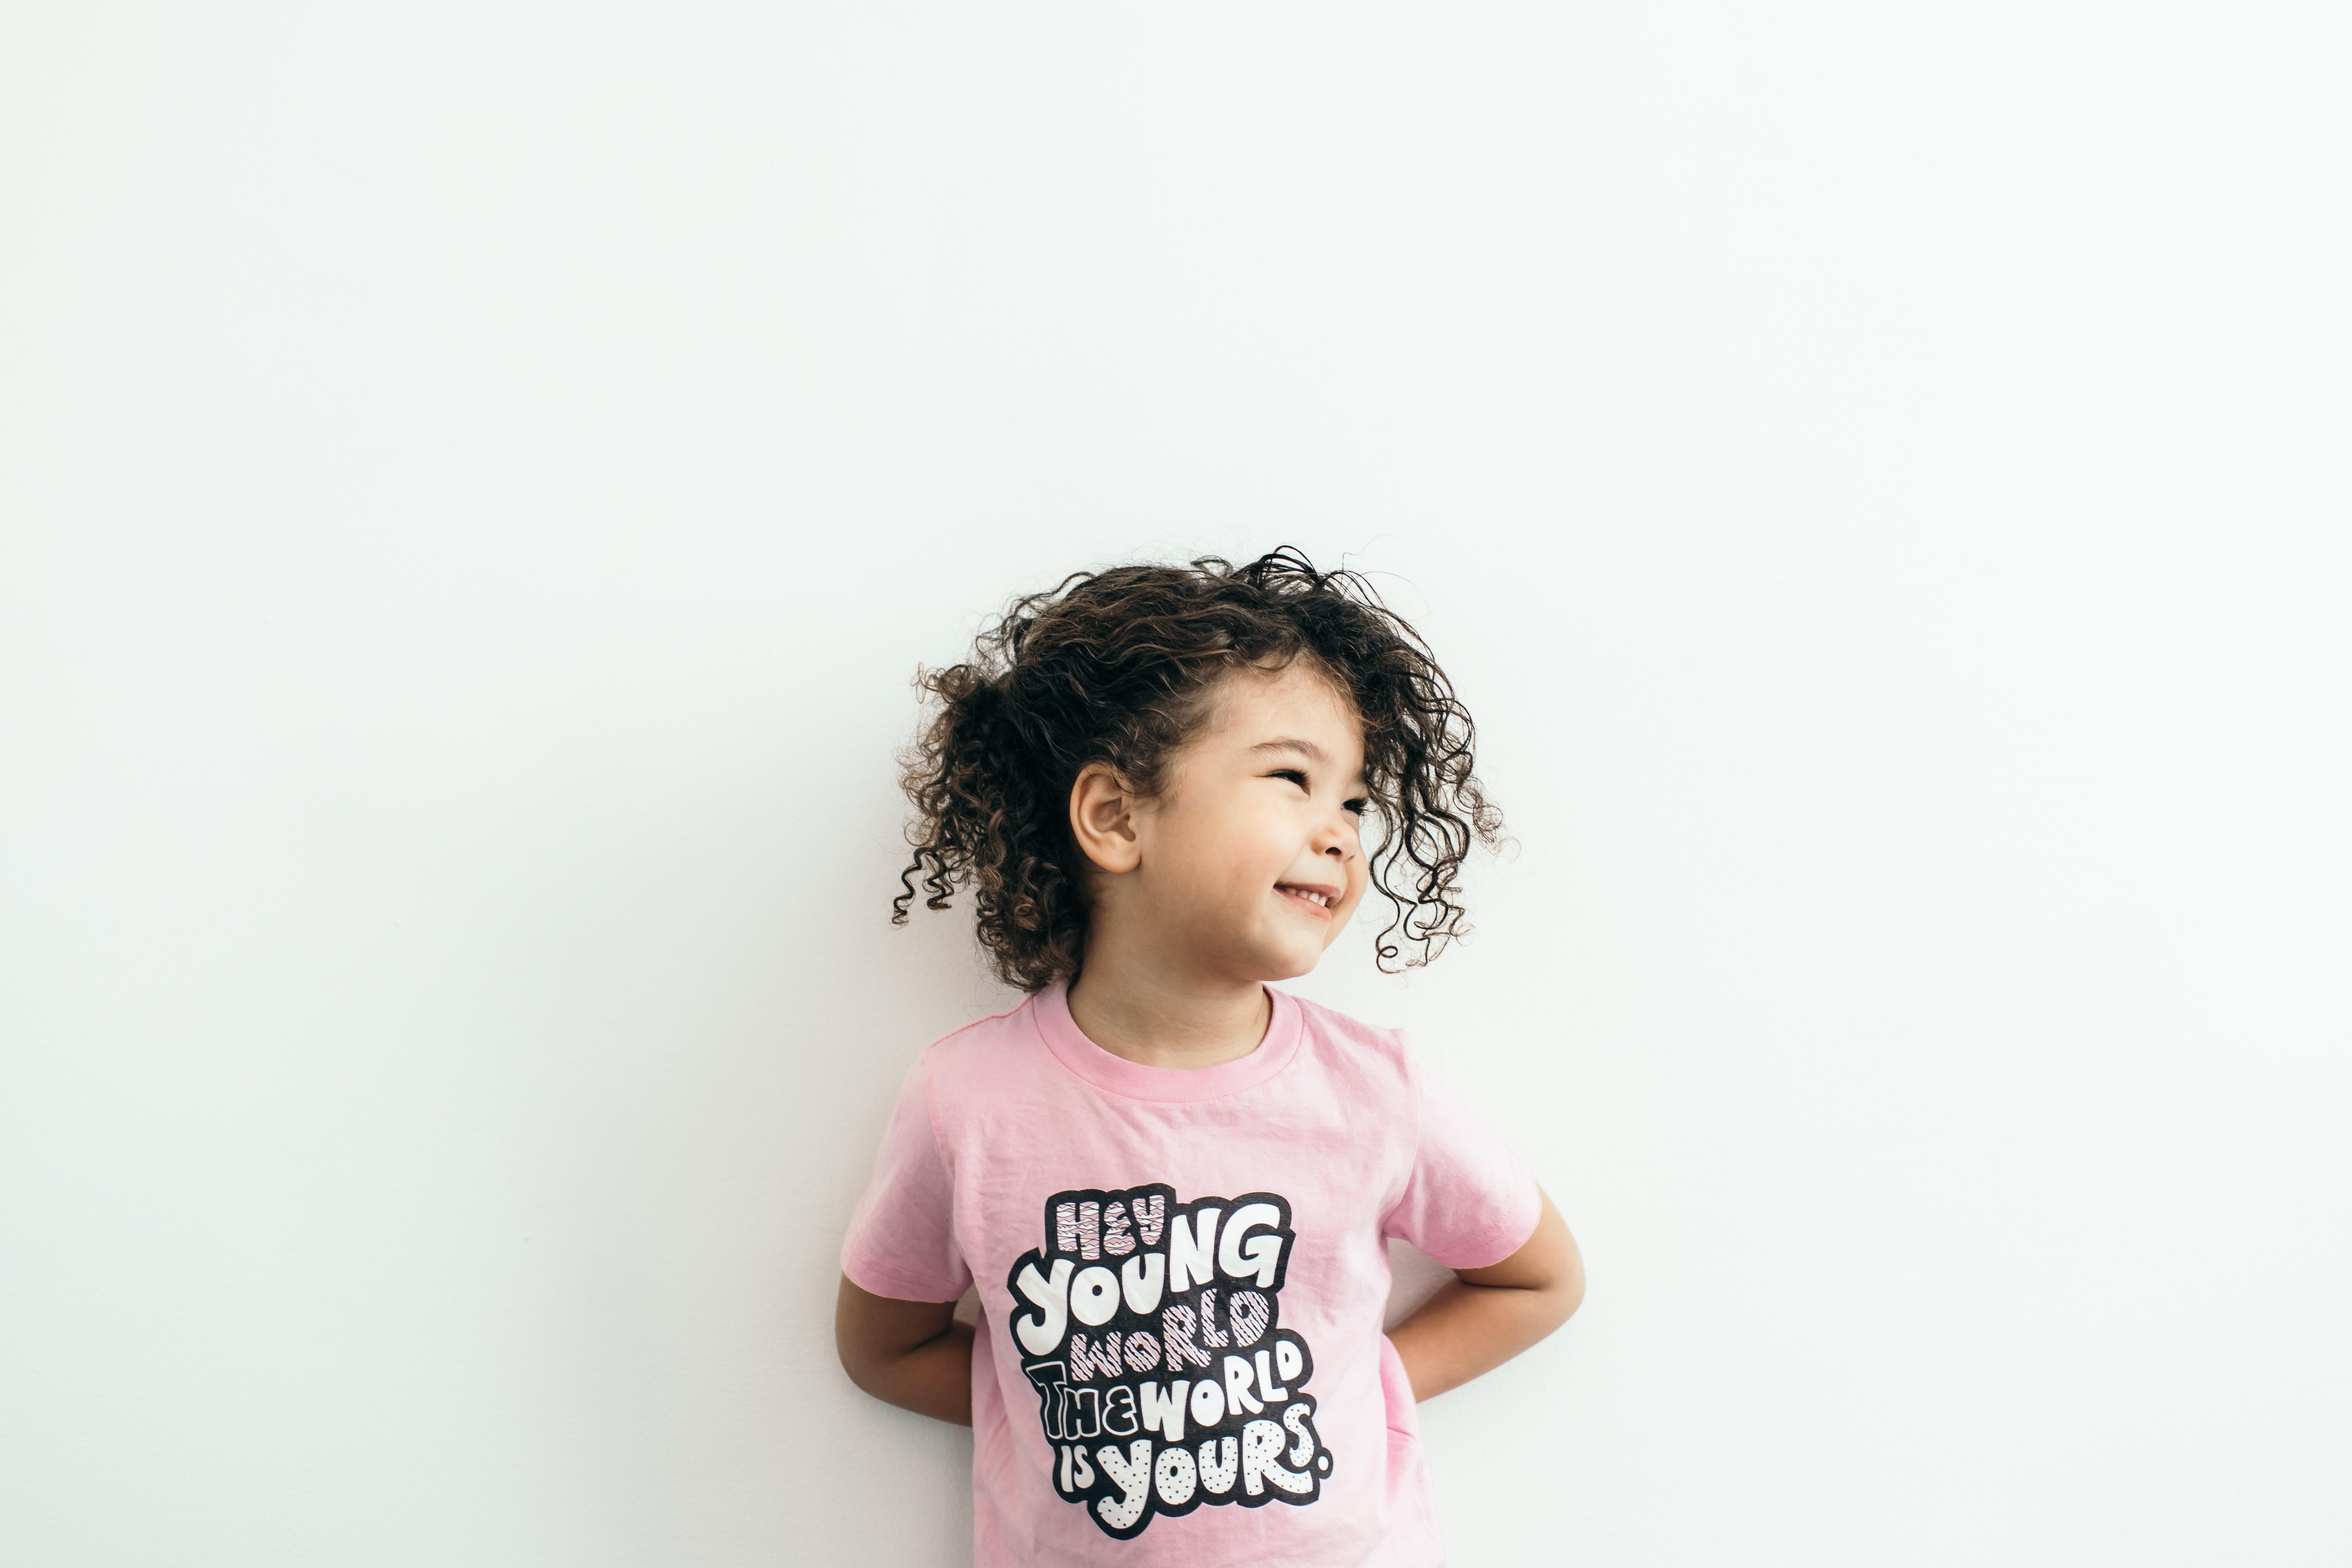 Devan Bryant, 4, models one of the shirts from her parents' clothing line, Little Nomad.